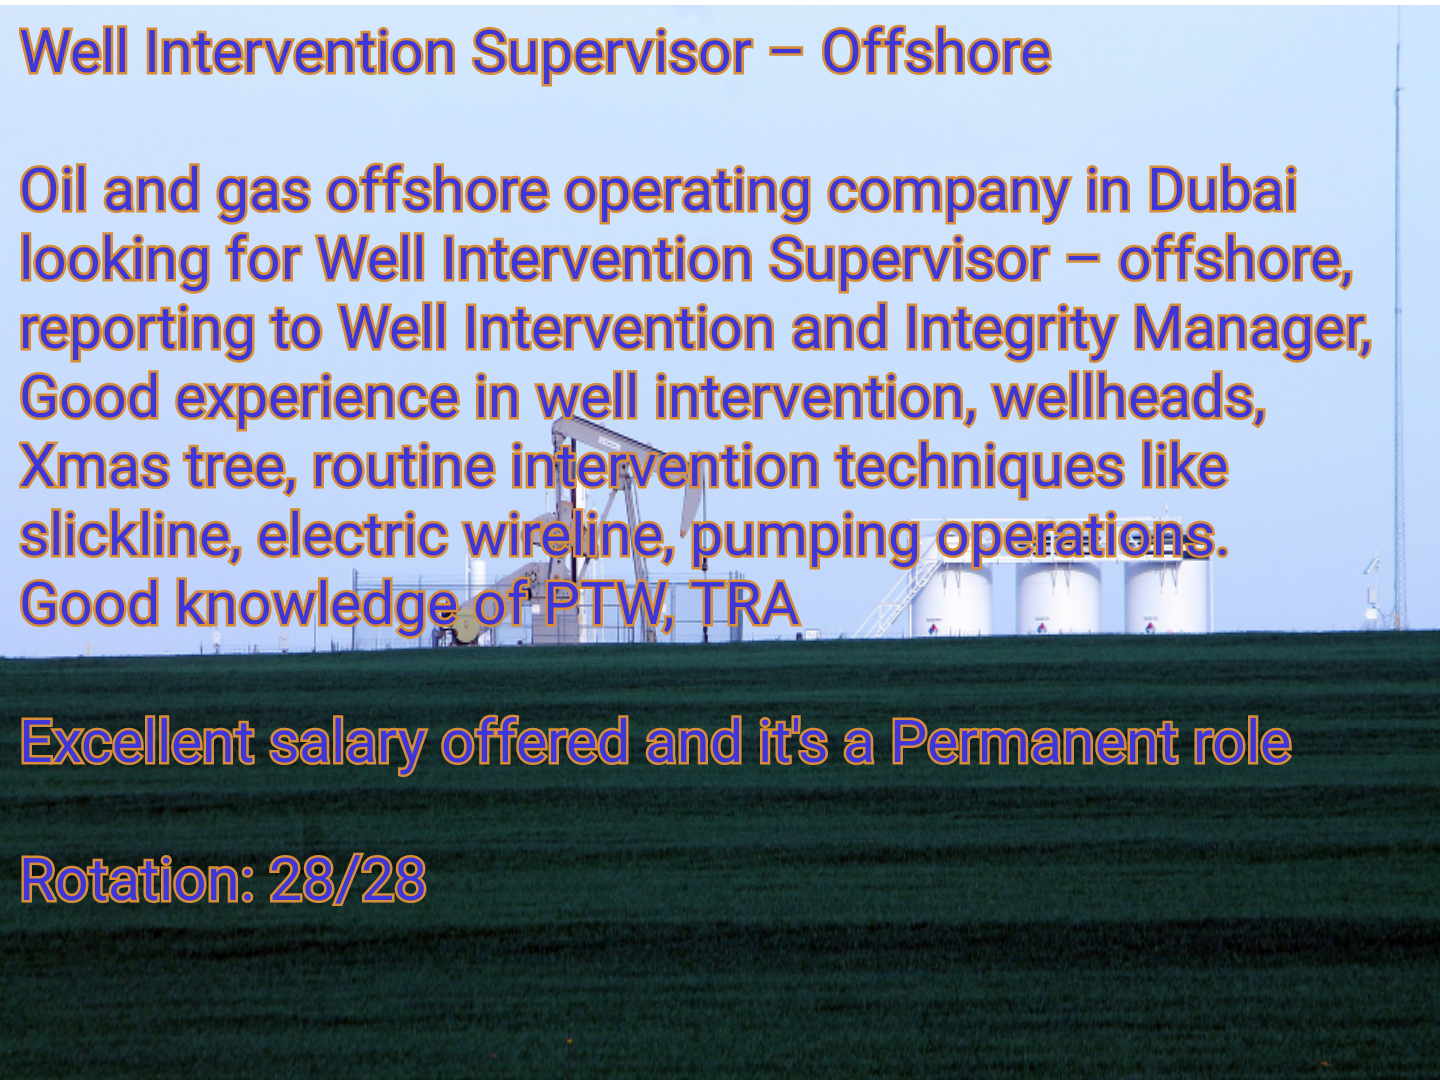 Oil and Gas Jobs: Well Intervention Supervisor, 28/28 Rotation